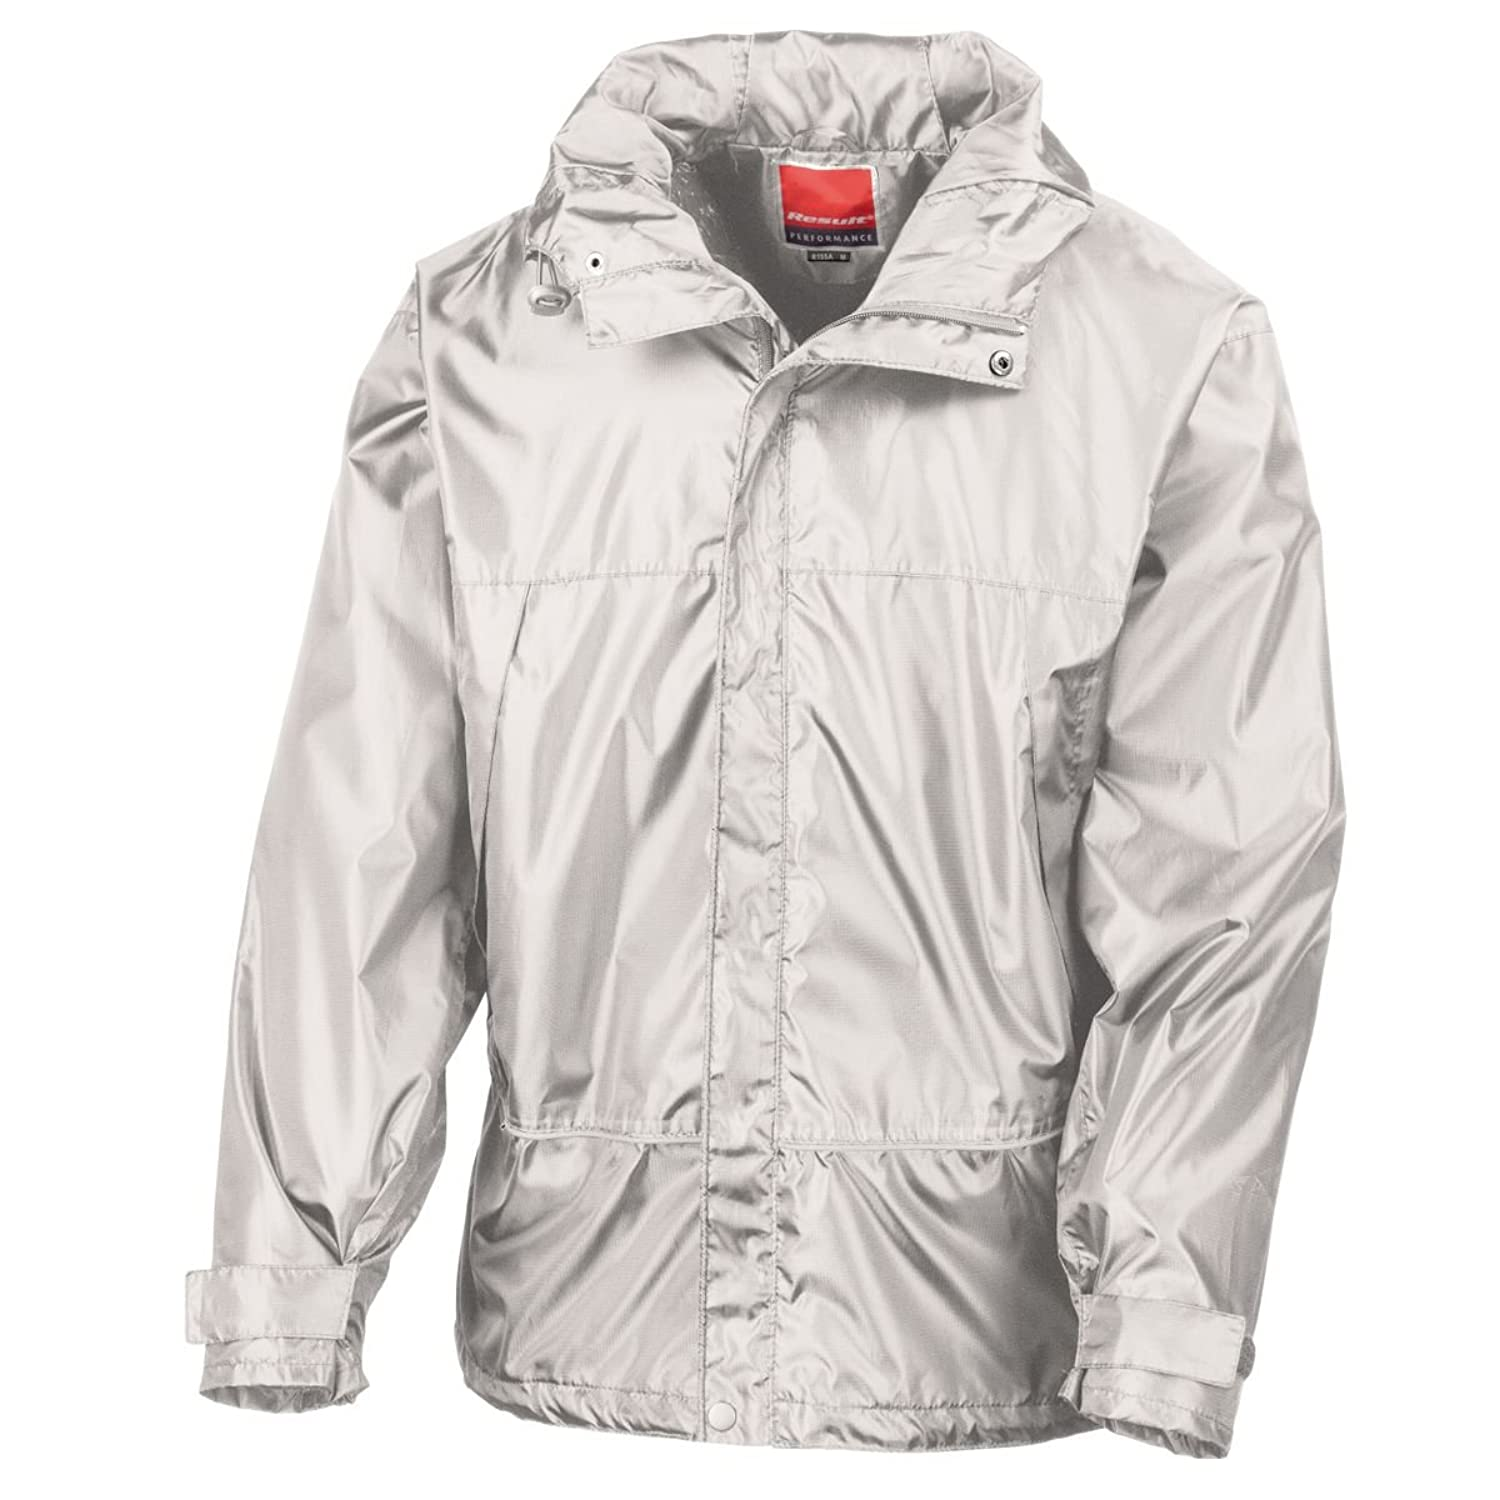 Result Waterproof 2000 pro-coach jacket White XL